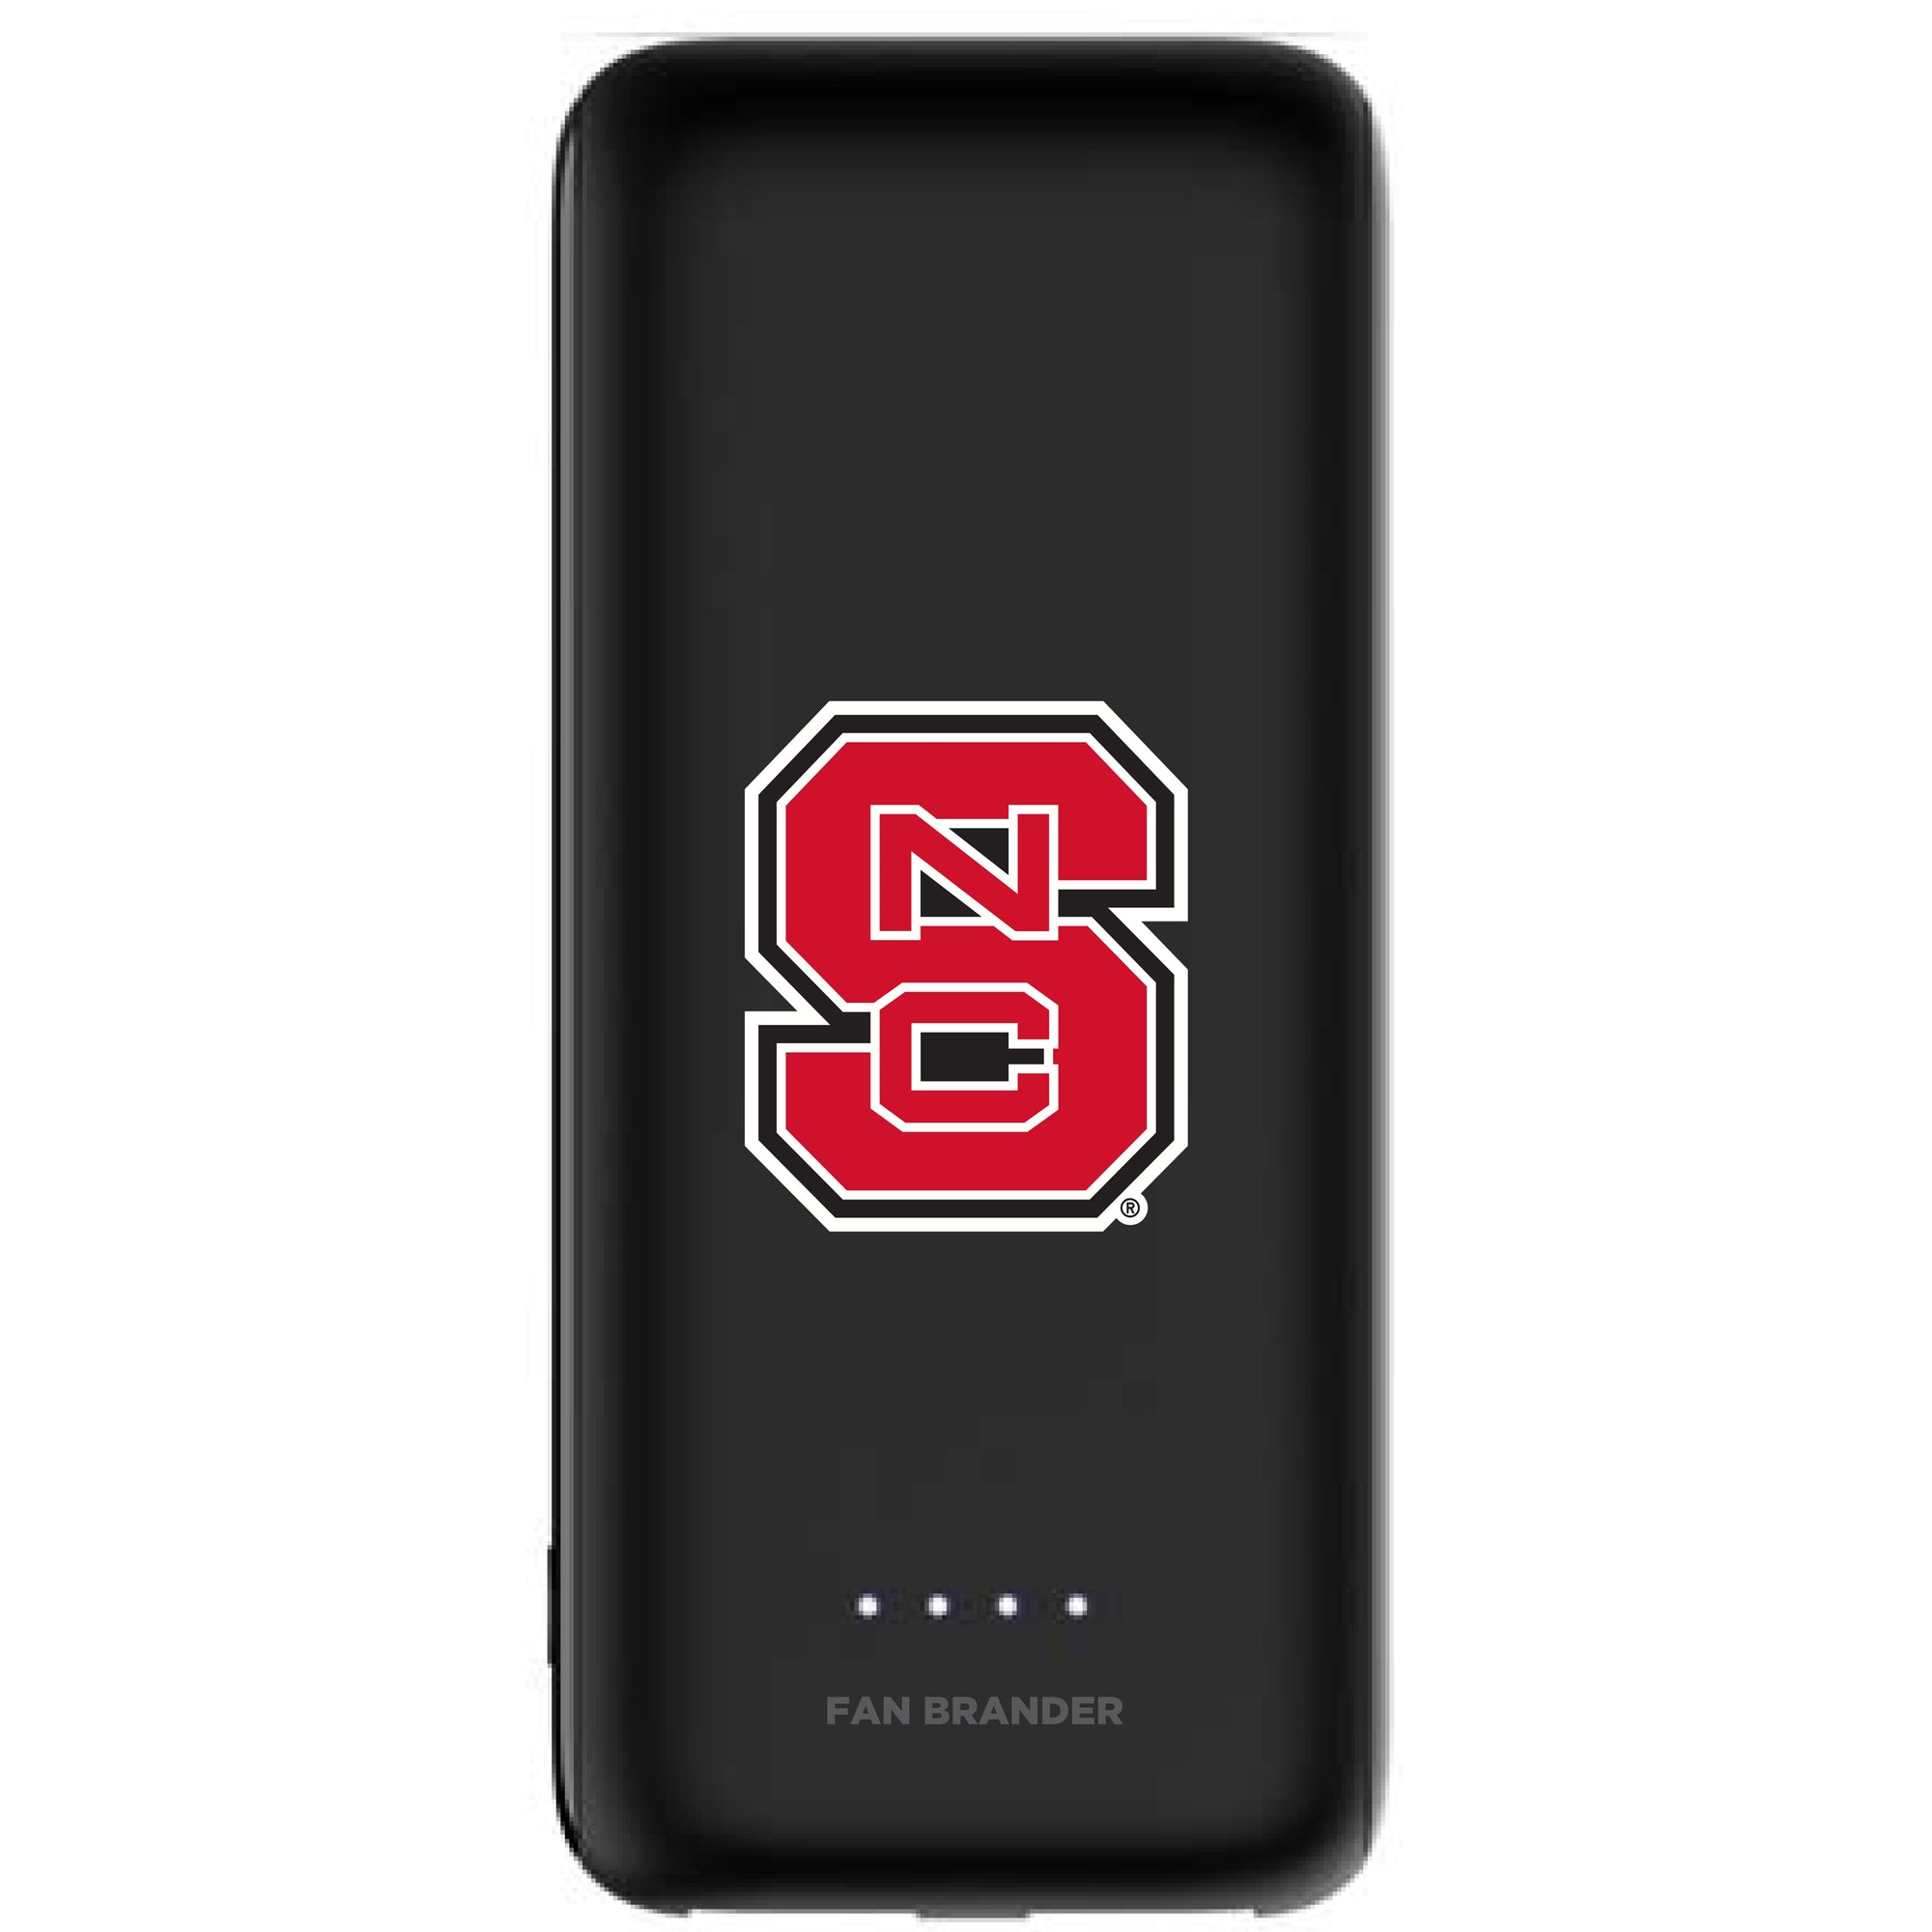 NC State Wolfpack Power Boost Mini 5,200 mAH